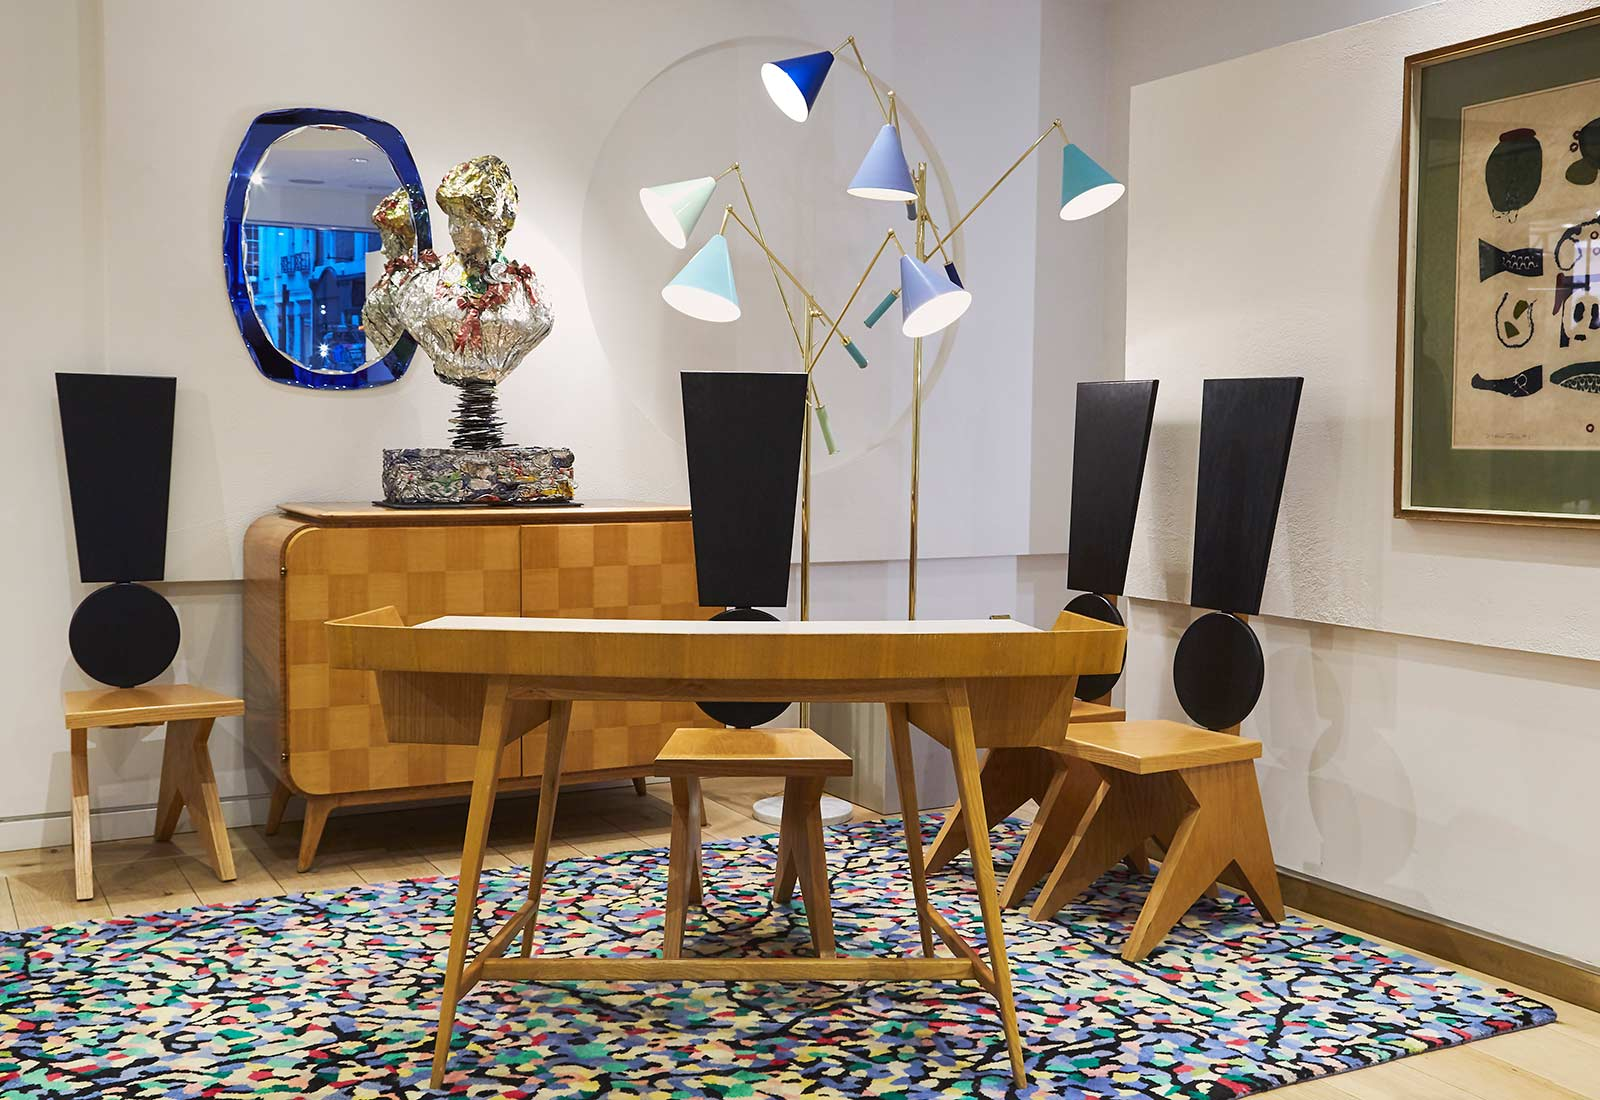 Paul Smith No.9 Albemarle Street Furniture Shop